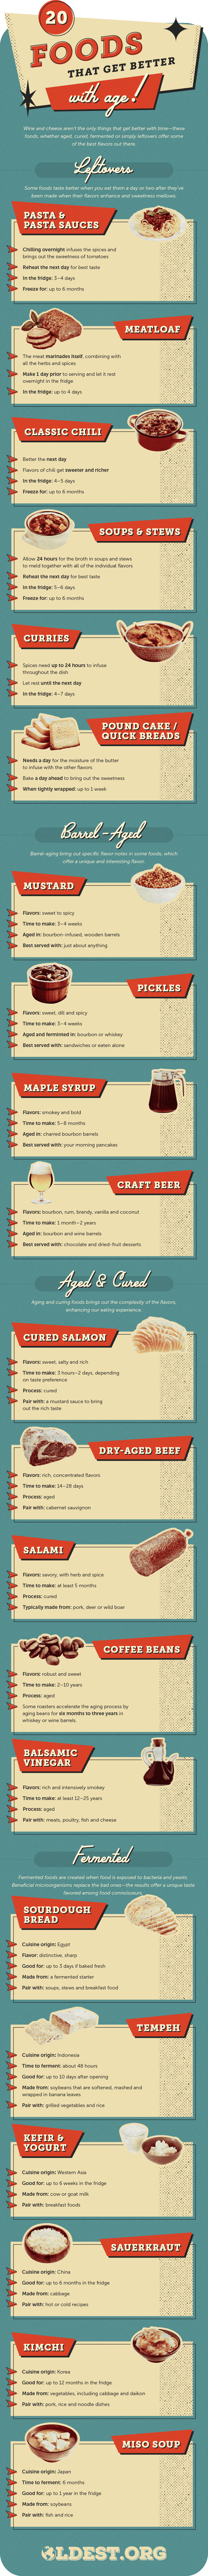 food that gets better with age infographic